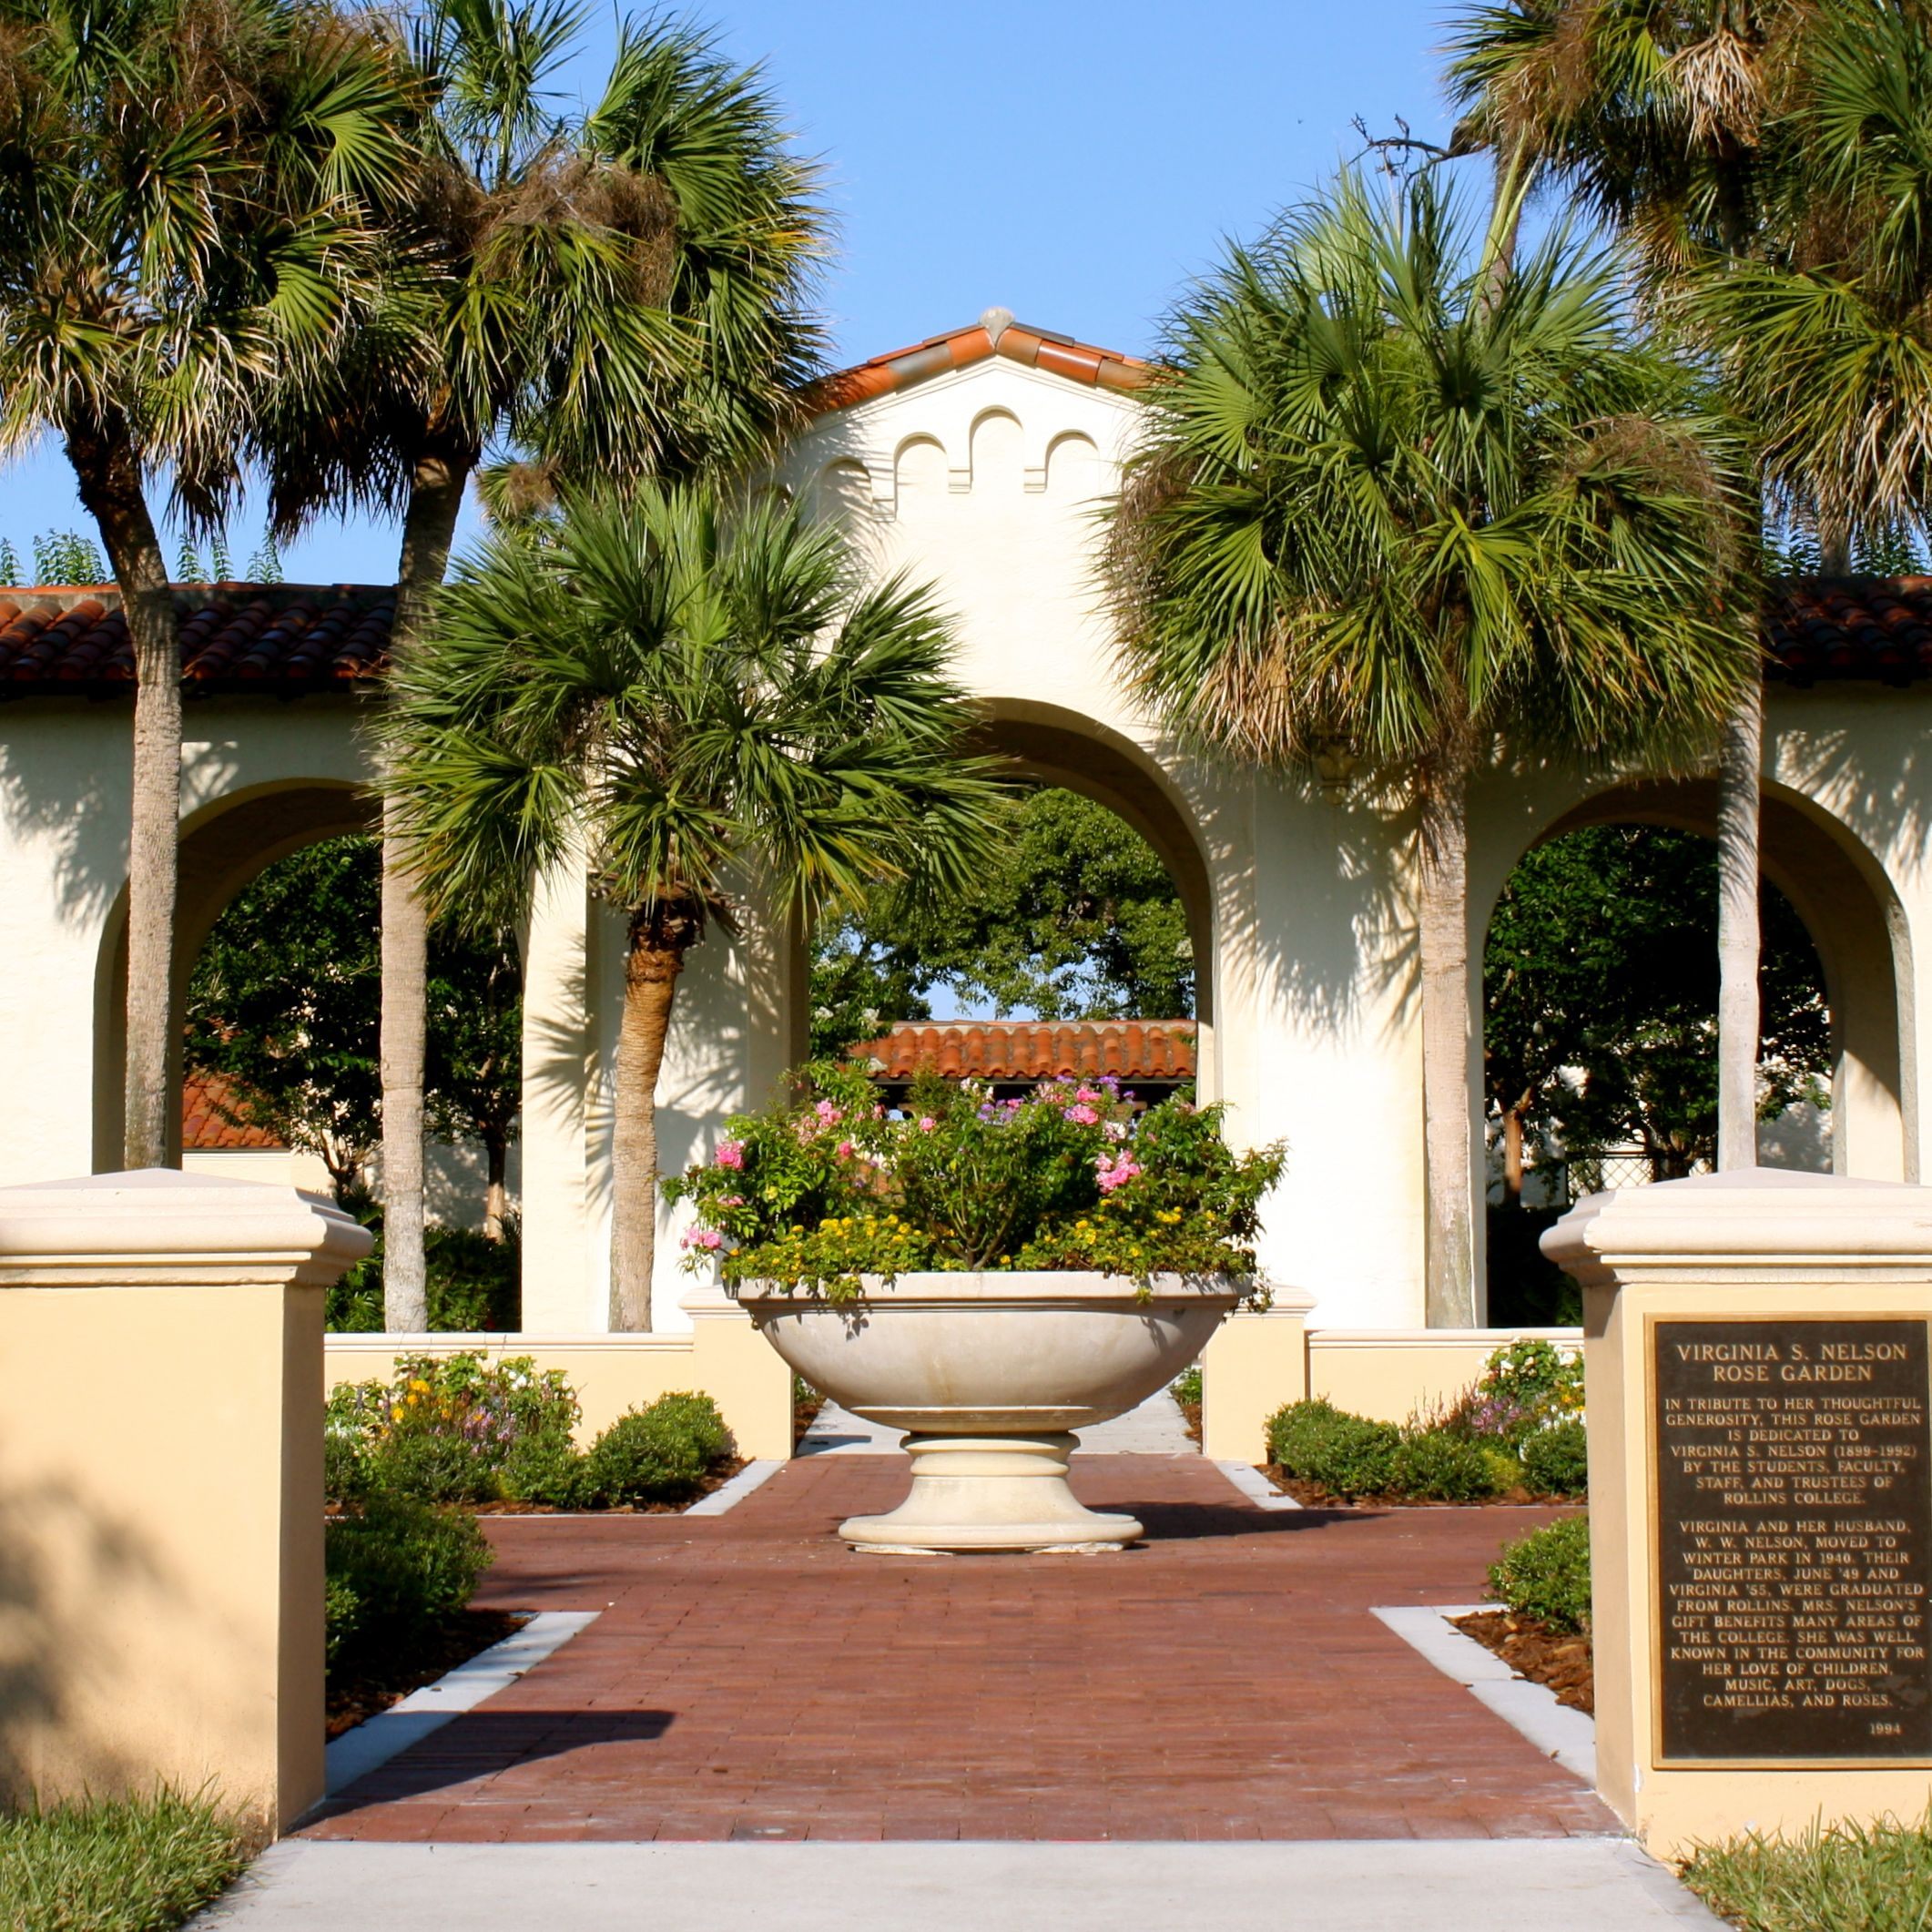 Affinity At Winter Park Home: The New Home Of The Rose Garden Between Knowles Memorial